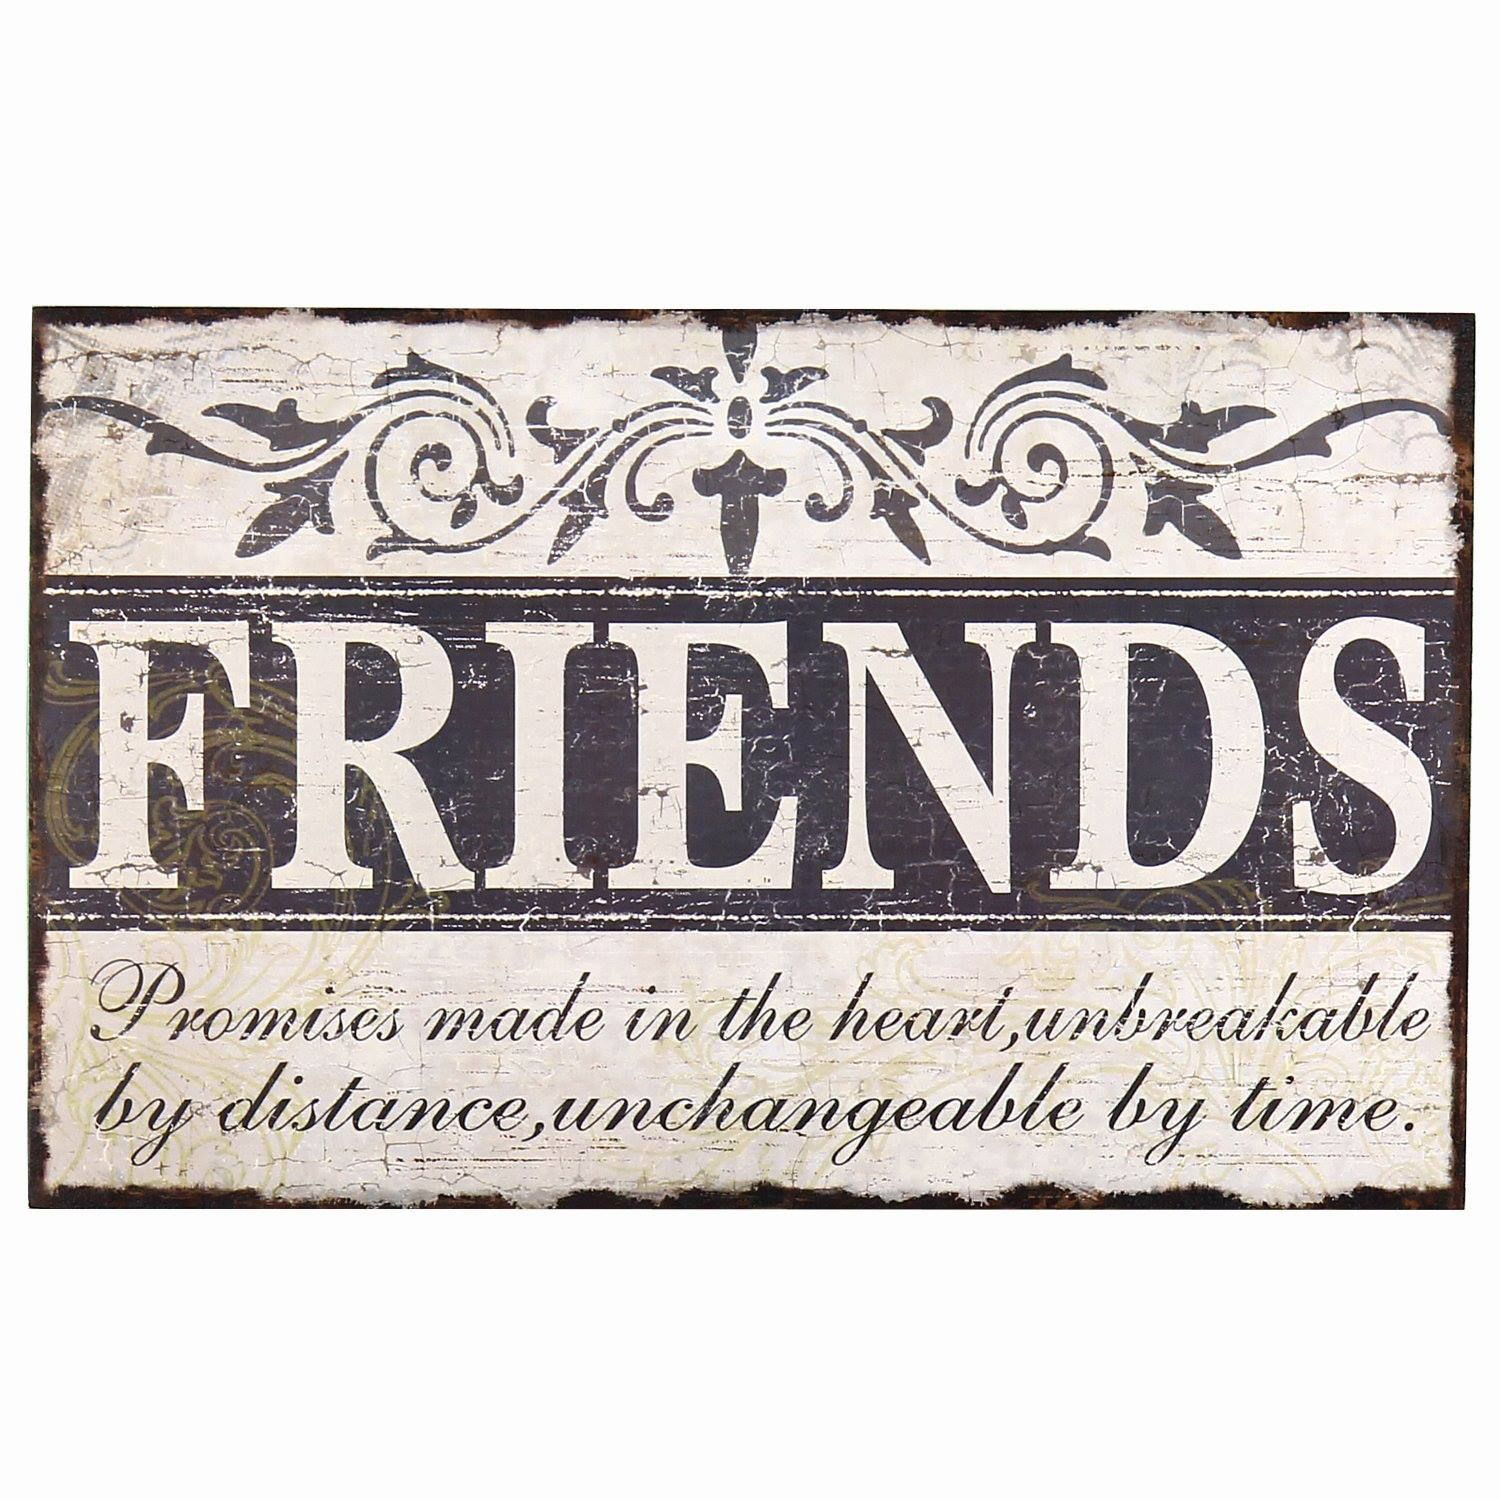 Quote About Distance And Friendship Www.heart2Shine Friends  Promises Made In The Heart